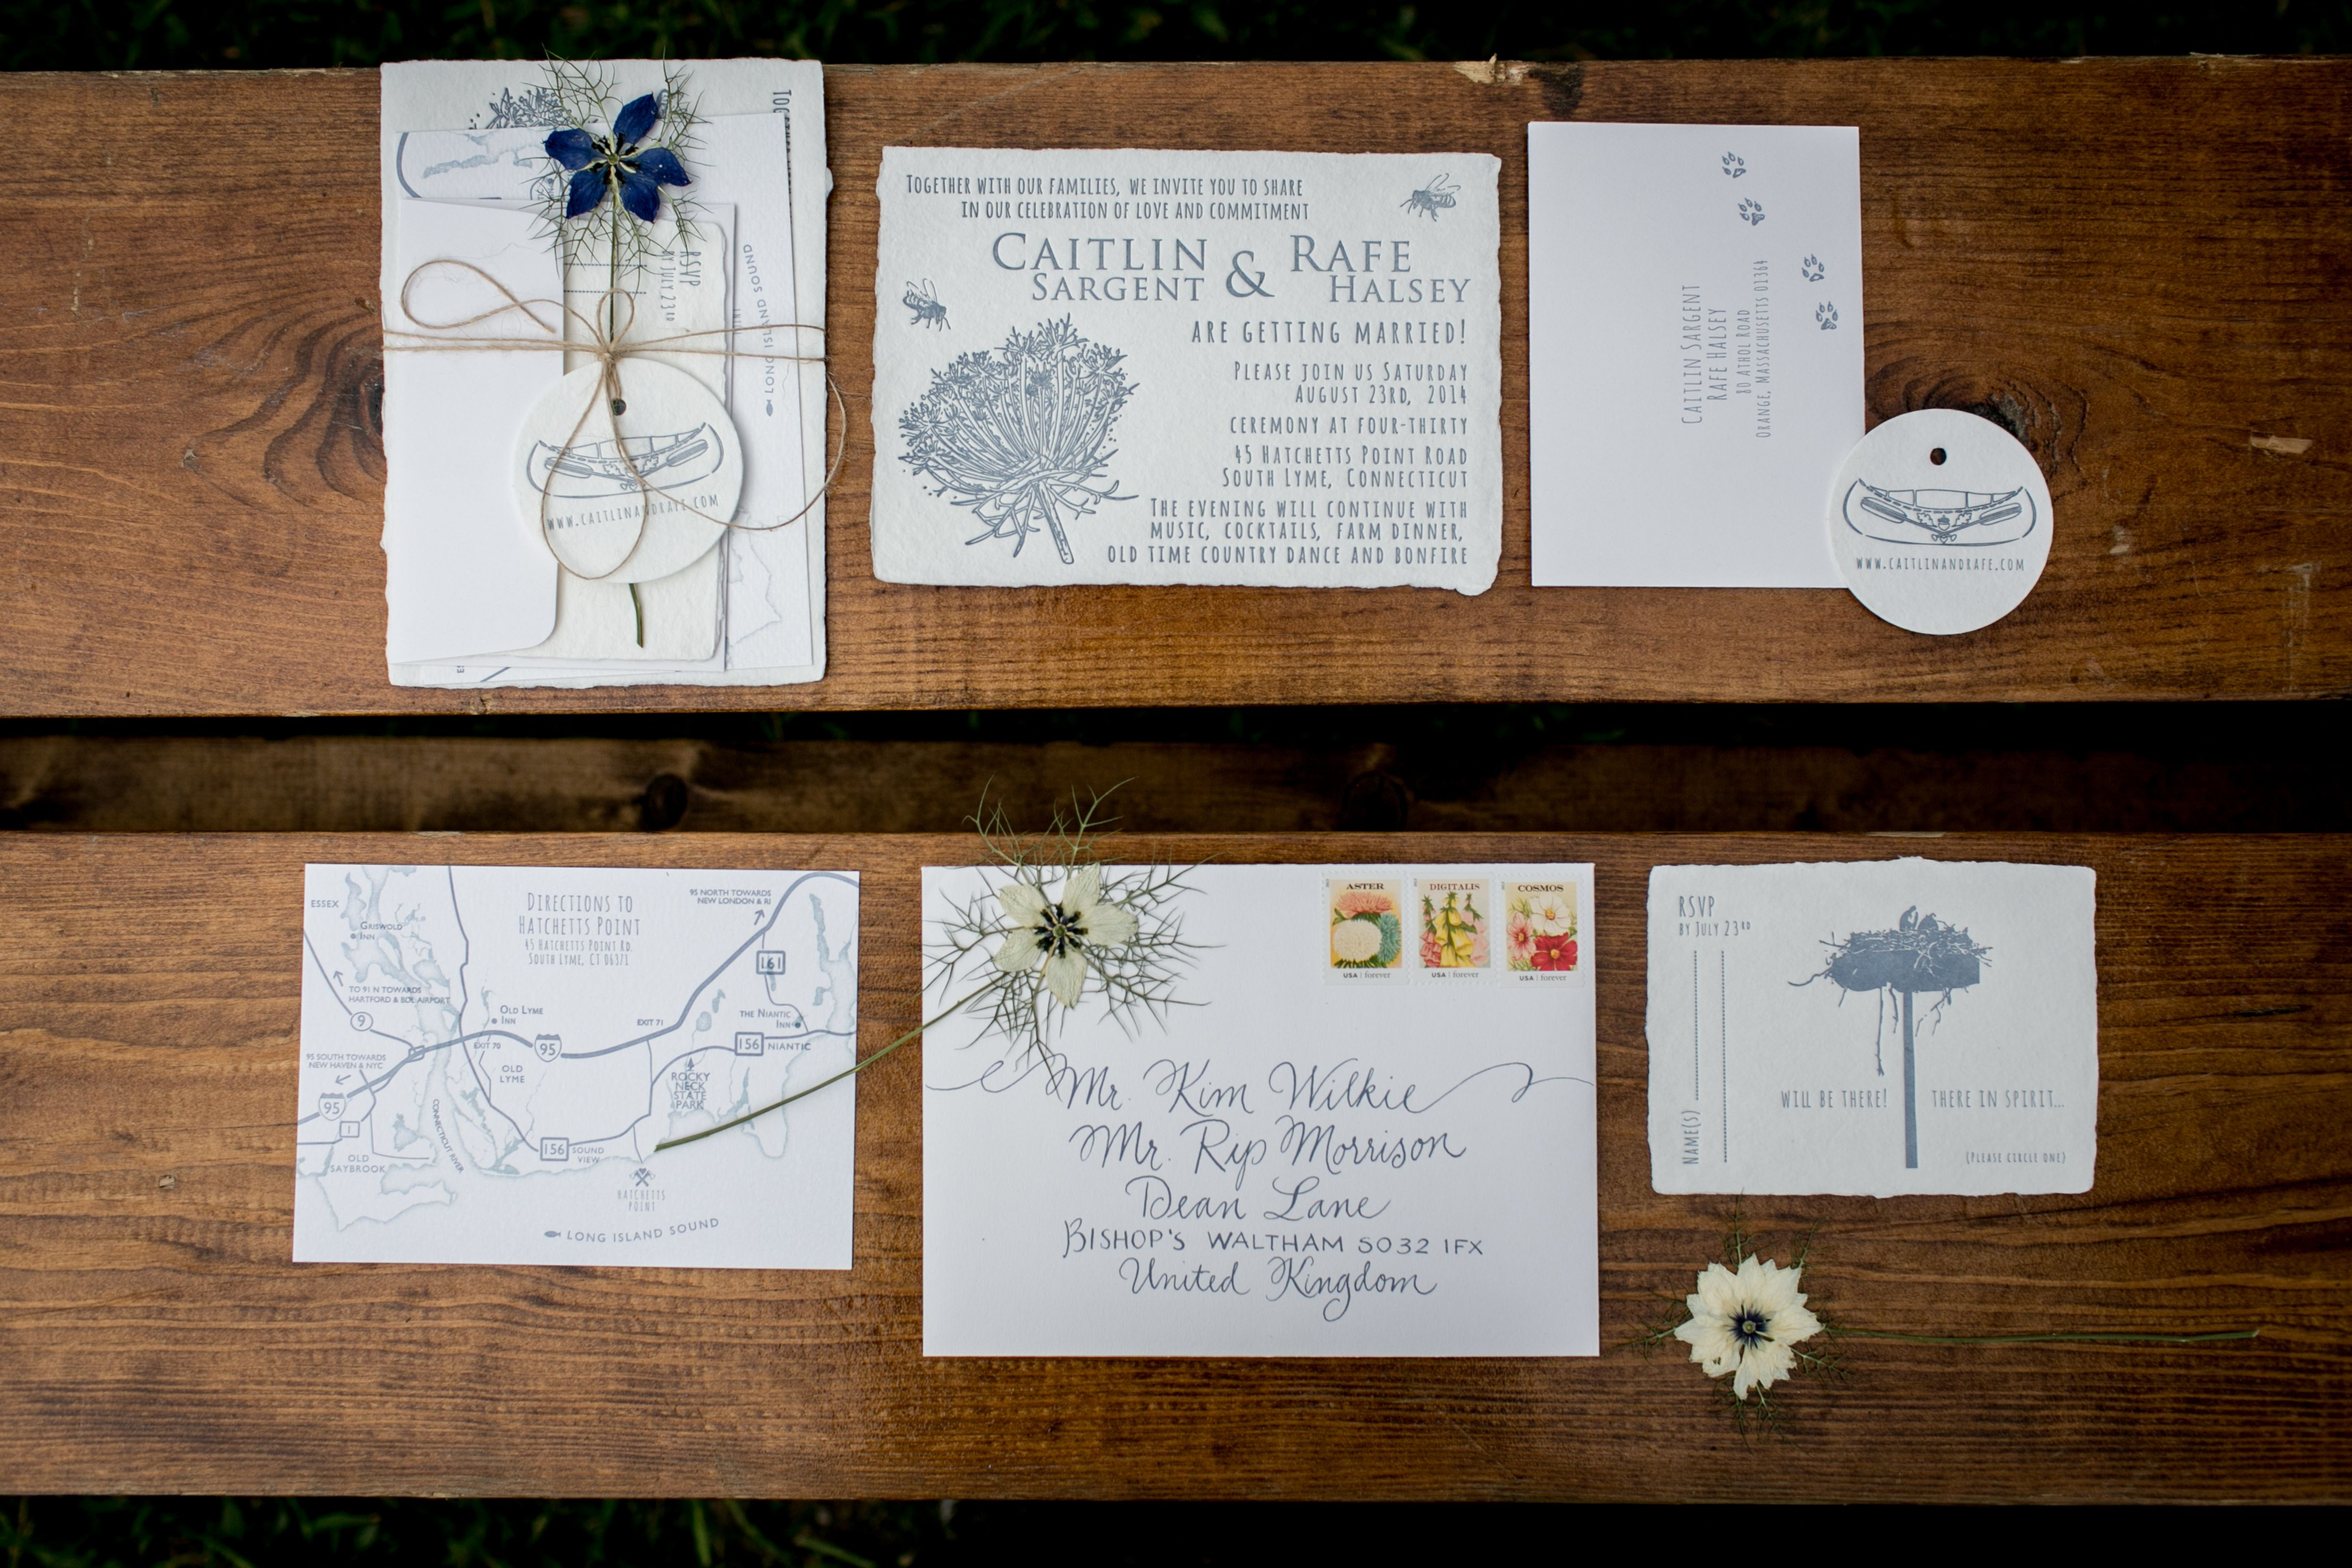 Wedding Invitation: Lion in the Sun. Oblations Papers.Tented wedding, Private Residence. Wedding Planning: Ashley Douglass Events, Photography: Brookelyn Photography, Flowers: Hana Floral Design, Tent: Sperry Tents, Catering: A Thyme To Cook, Invitations and Day of Paper: Lion in the Sun,  Hair and Make up: Upstyle, Rentals: Party Rental LTD., Furniture: Sassafras Vintage Rentals.